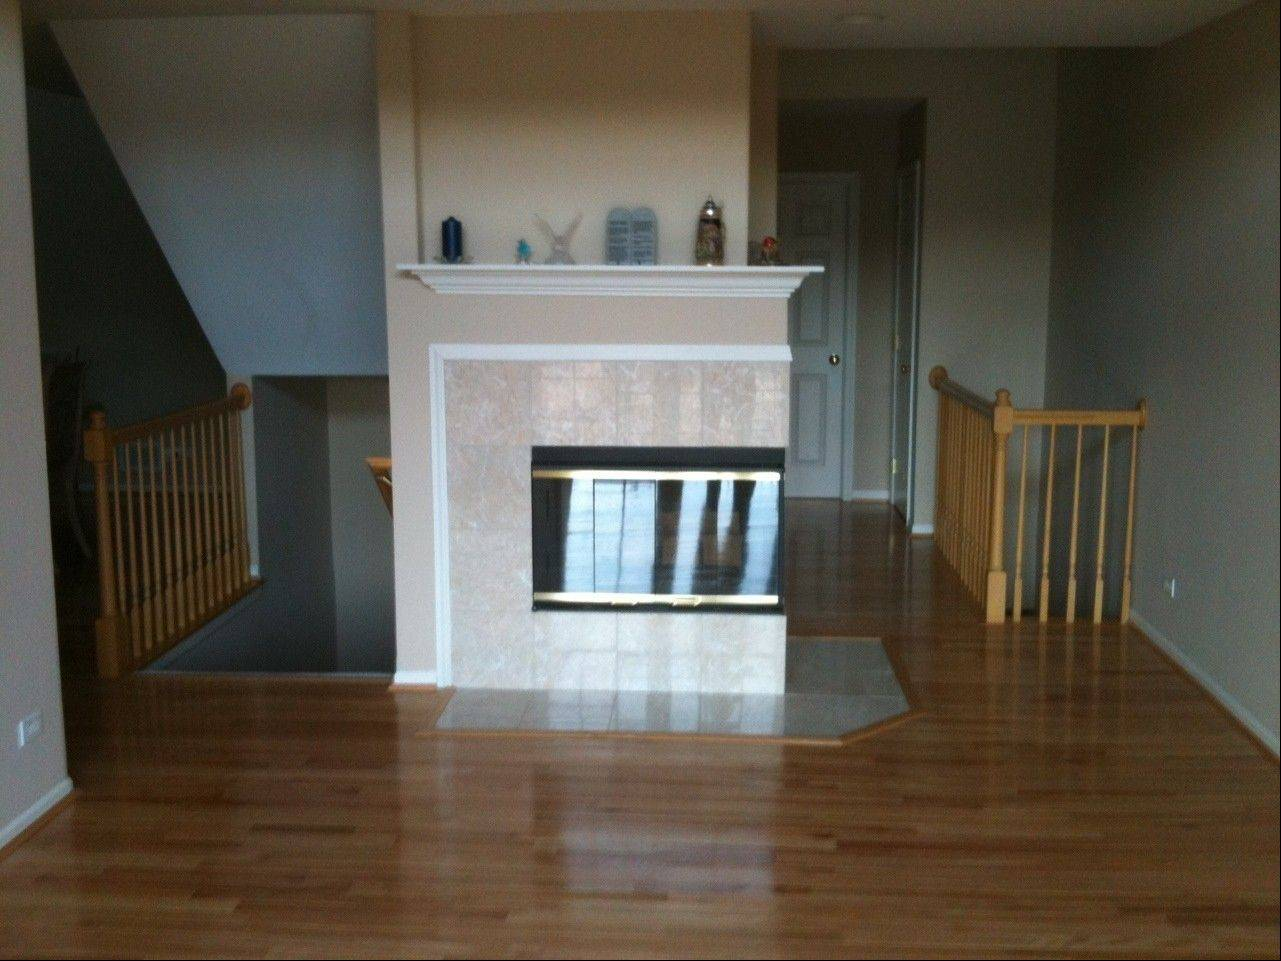 The fireplace, before the makeover.